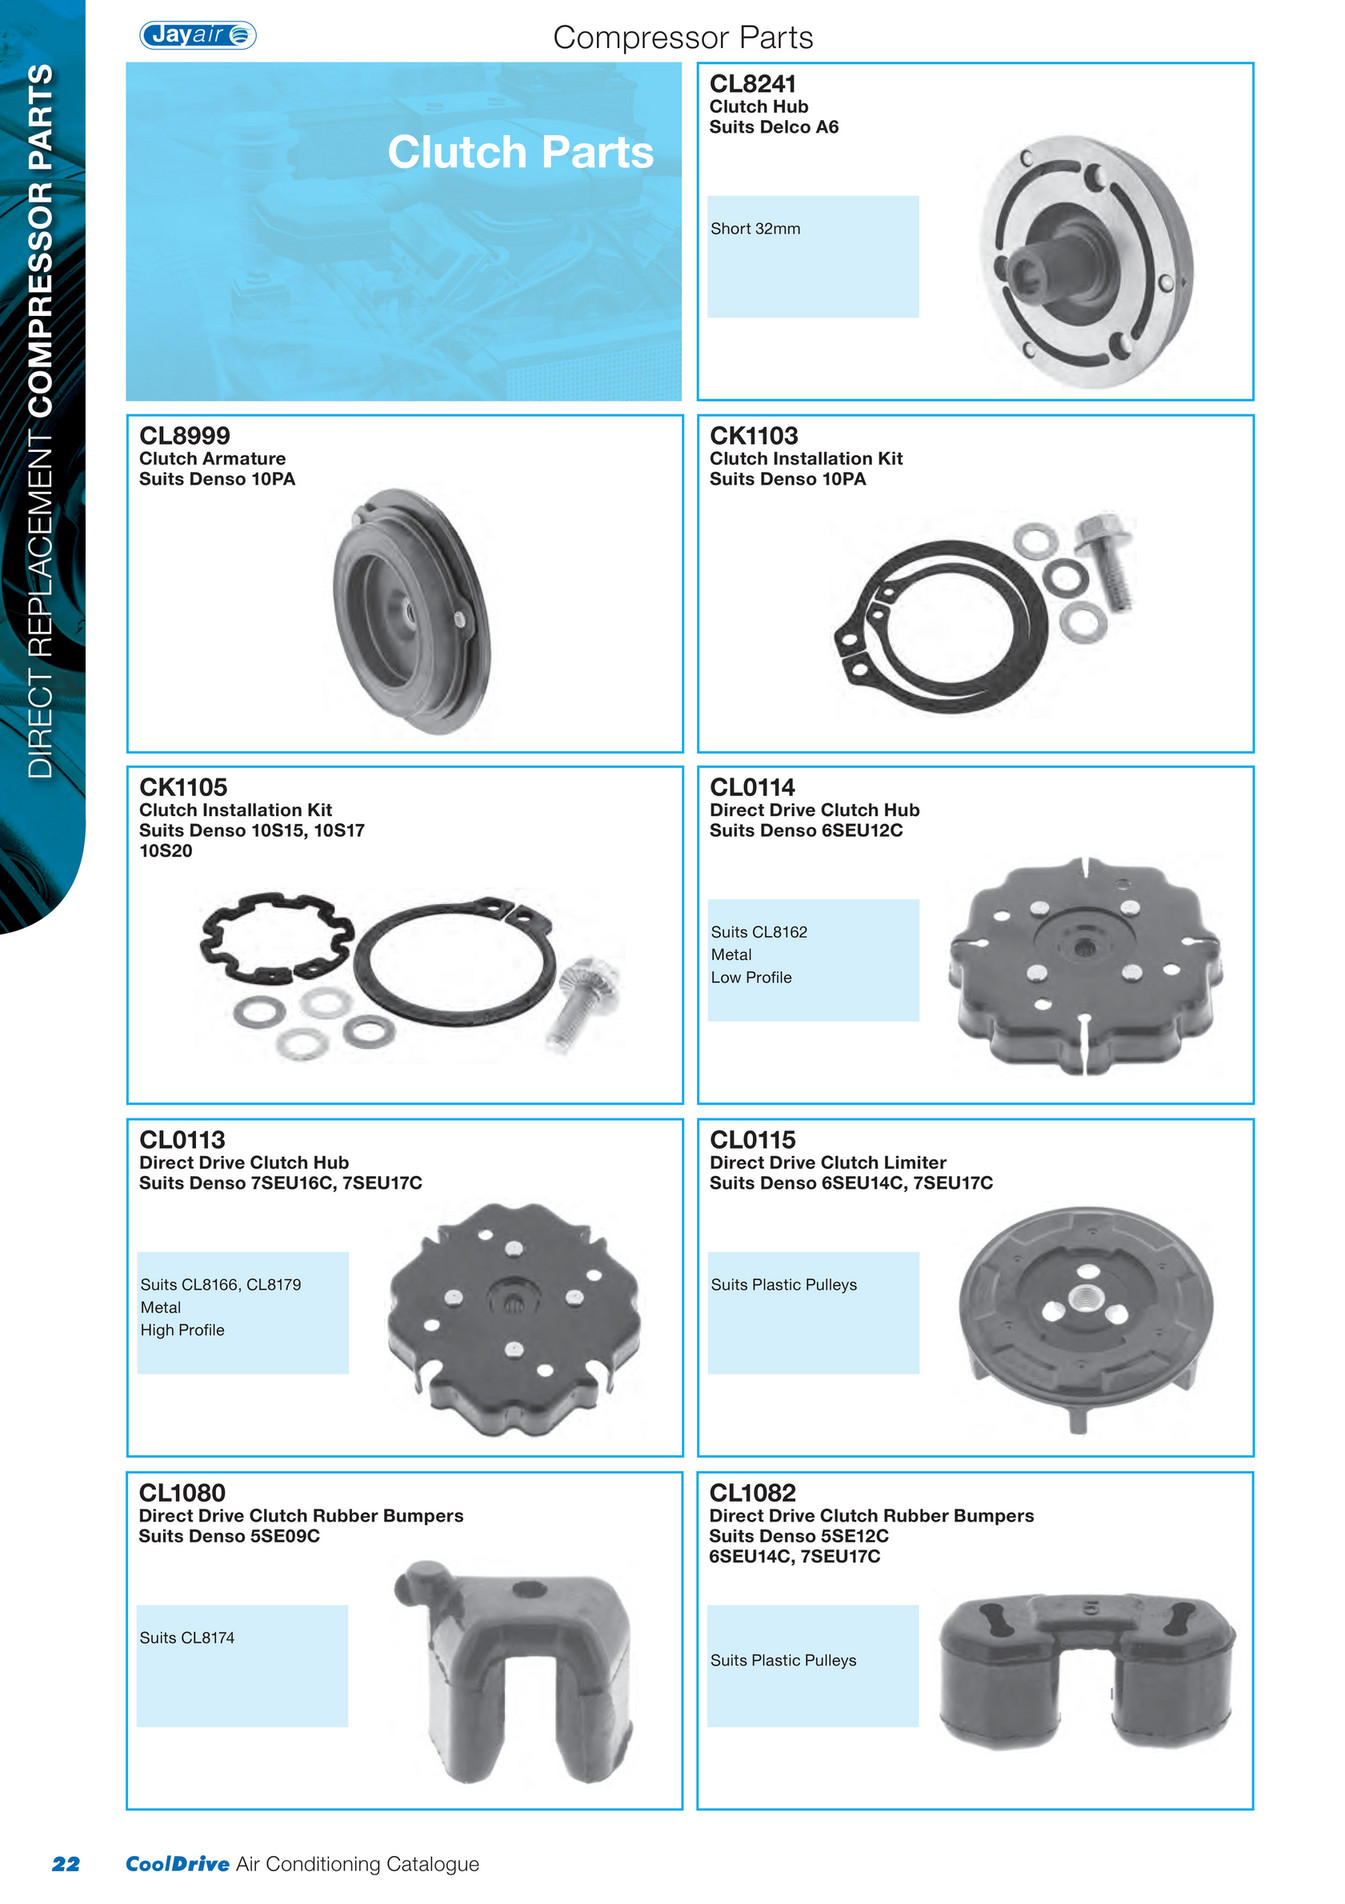 Cooldrive - 2014 Air Conditioning Catalogue - Page 24-25